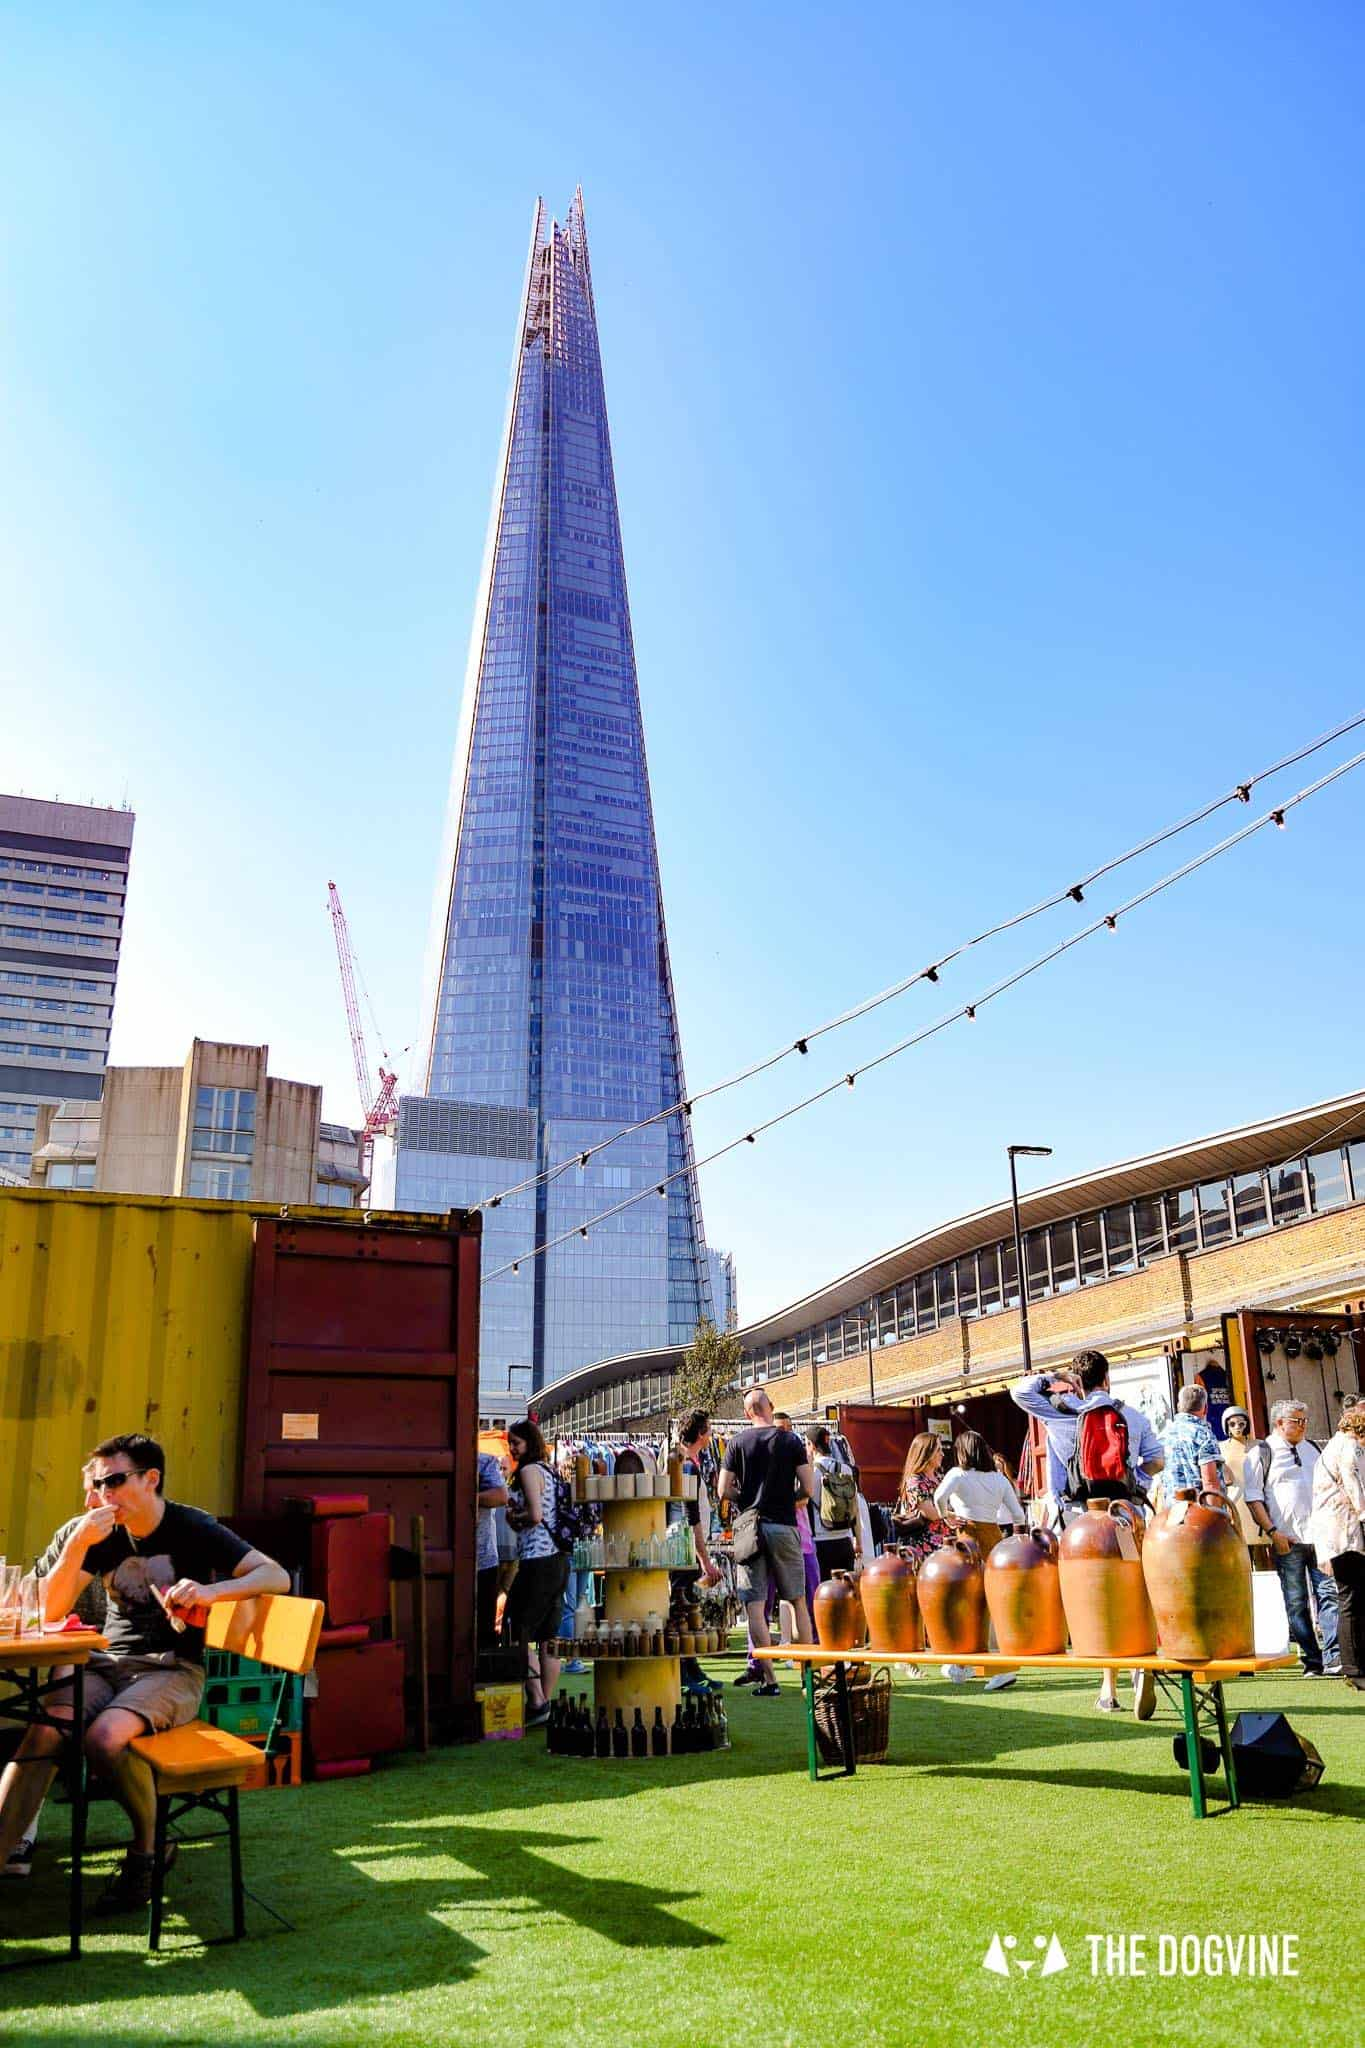 Guide To The Best Dog-friendly Street Food Markets and Halls in London - Vinegar Yard 4